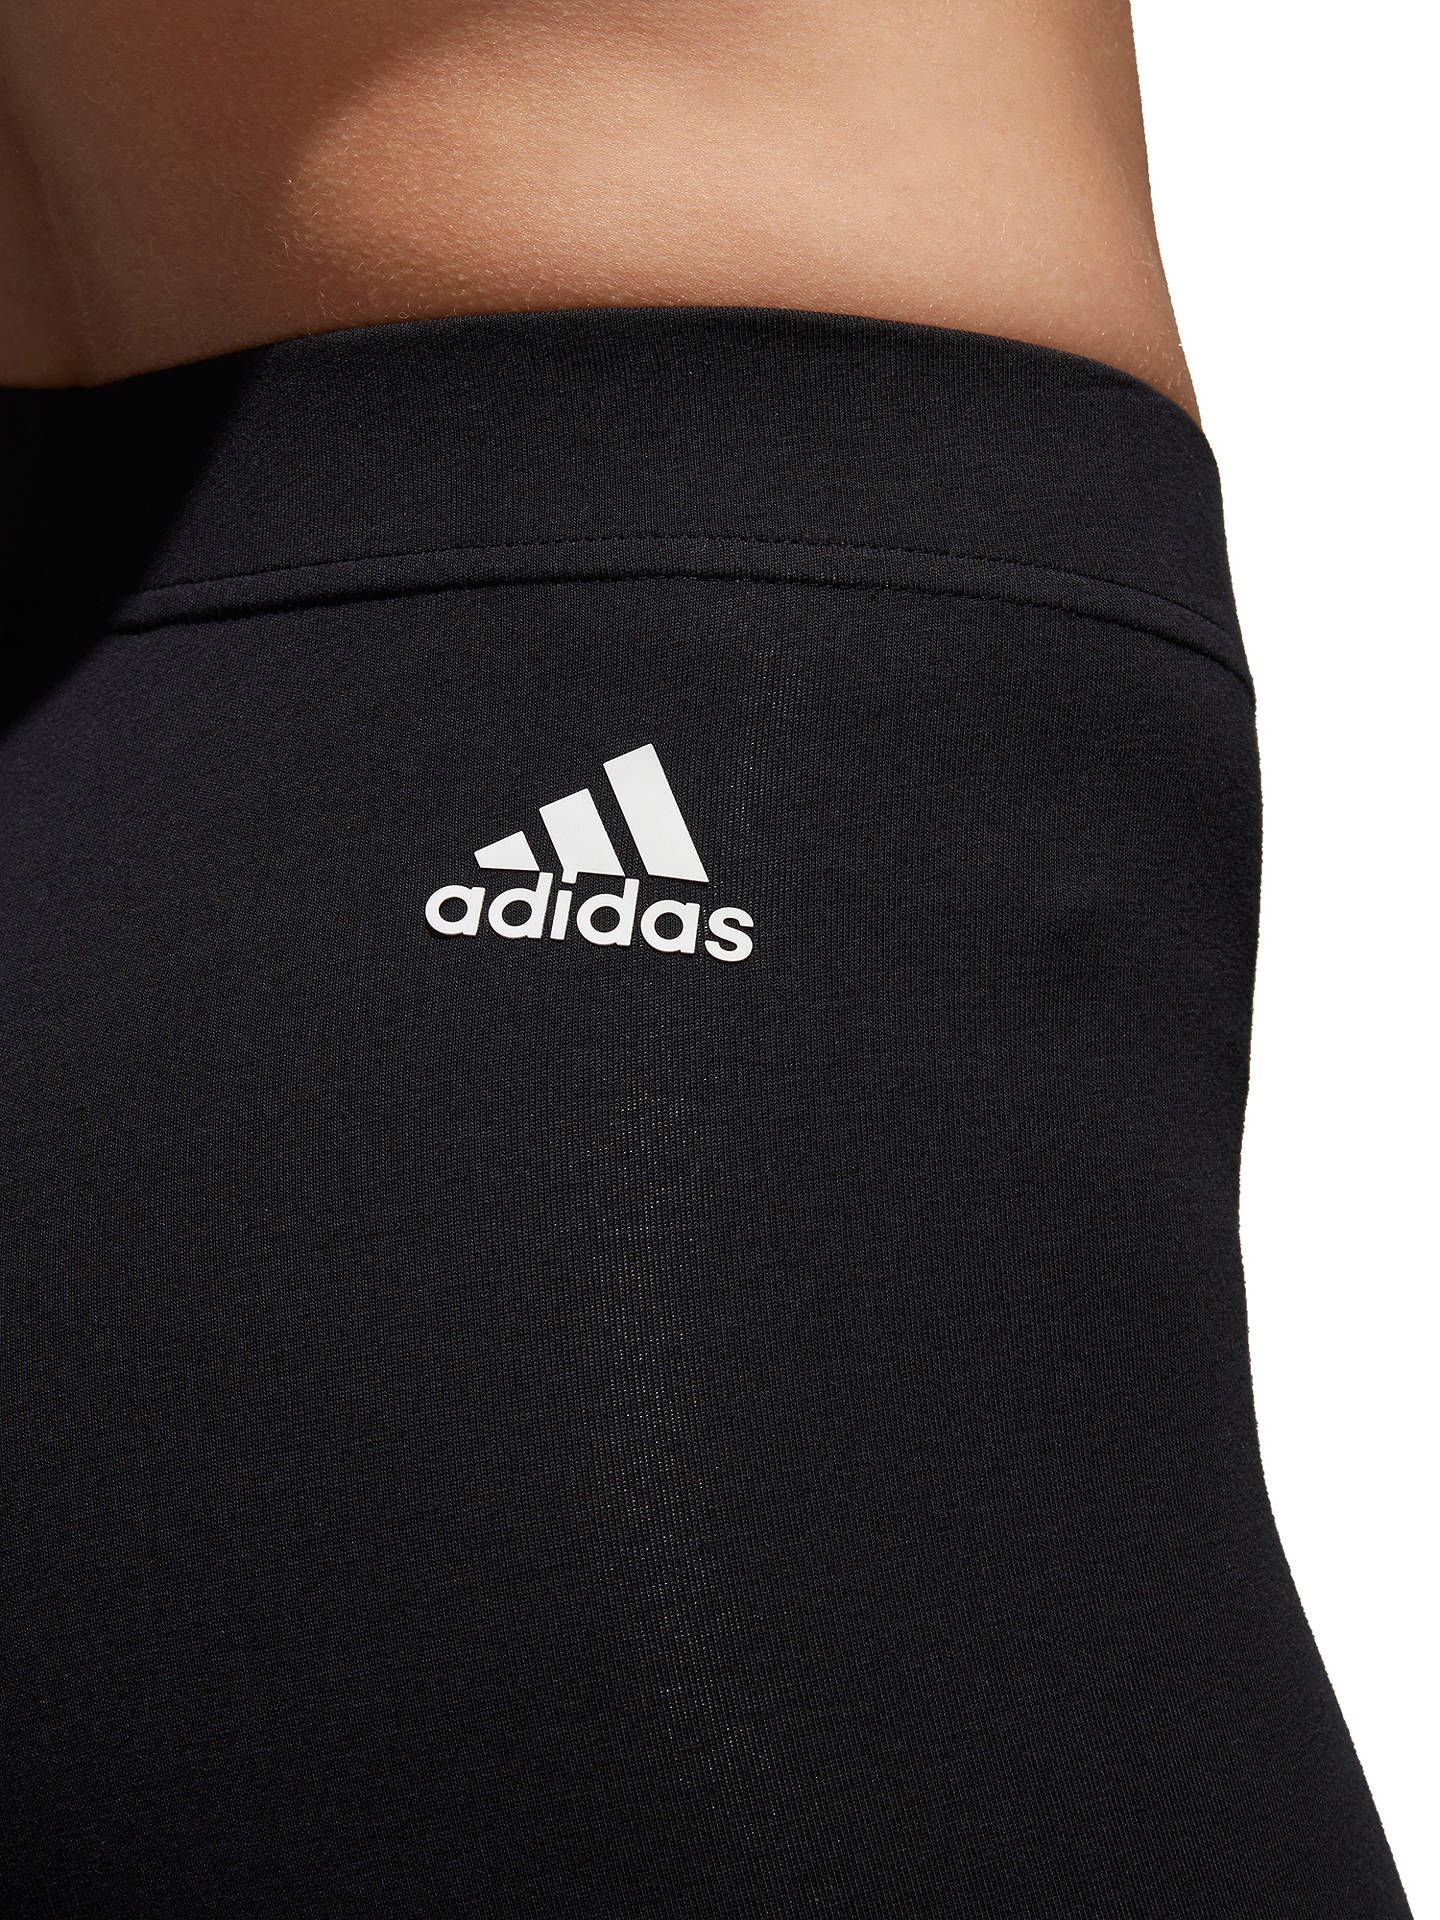 Buyadidas Essential Logo Long Training Tights, Black, XS Online at johnlewis.com